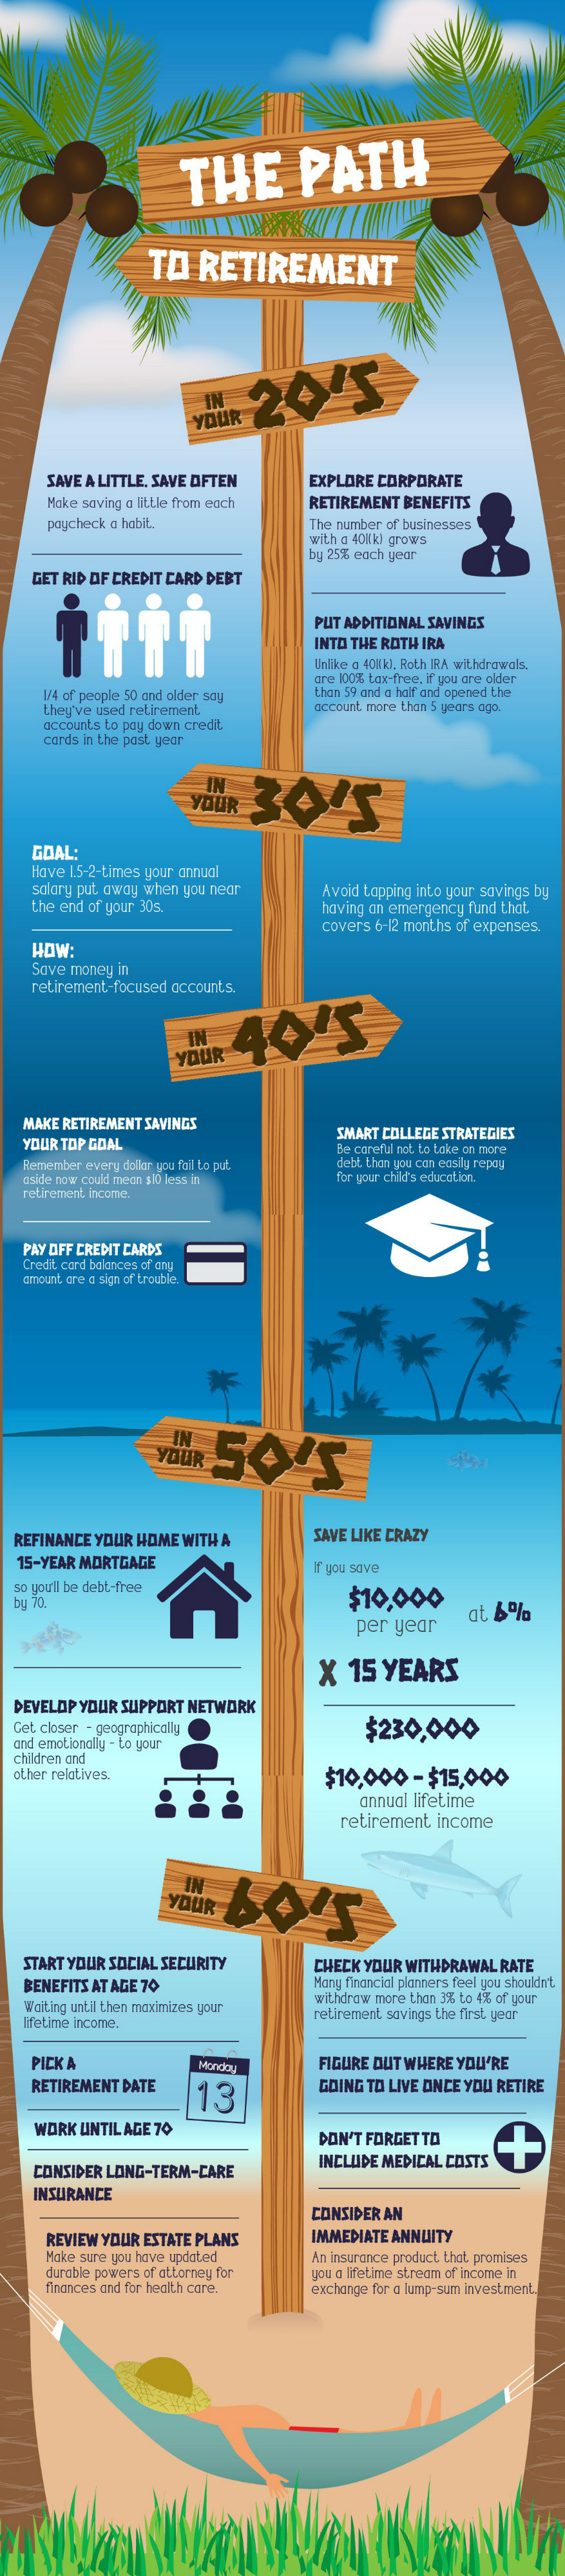 Set Yourself Up For Your Retirement [Infographic]